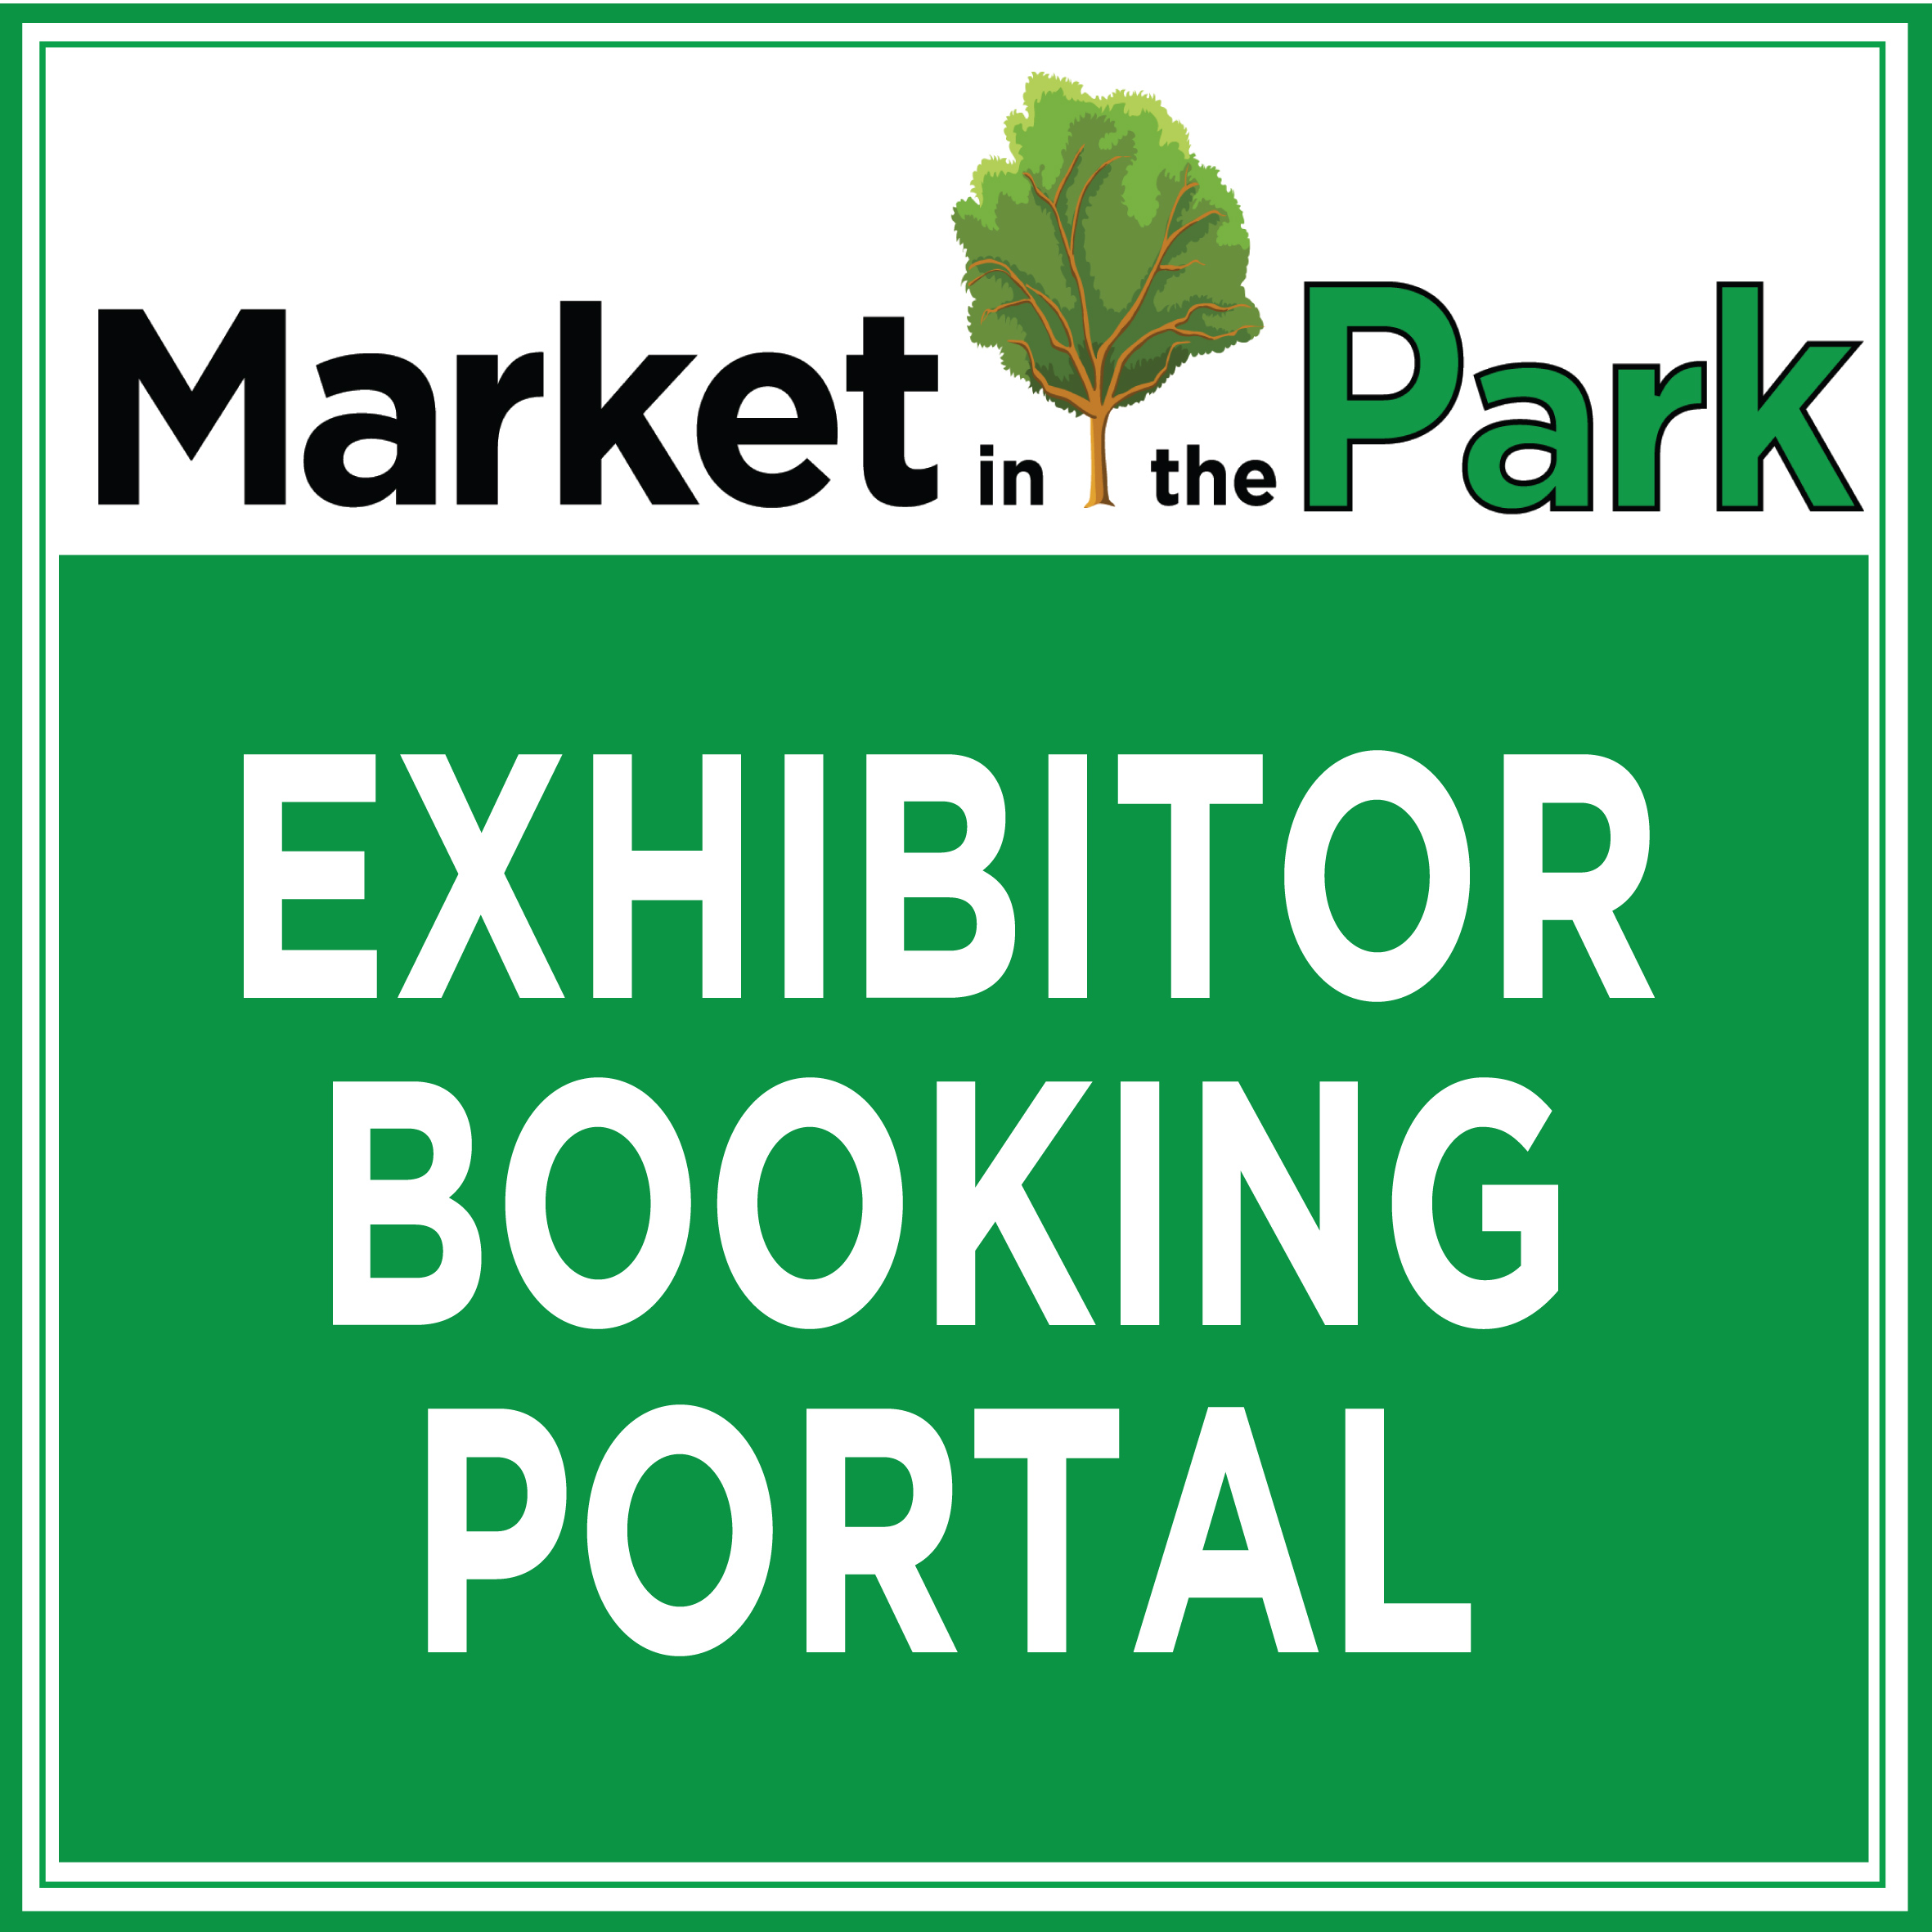 Market in the Park- Exhibitor booking portal